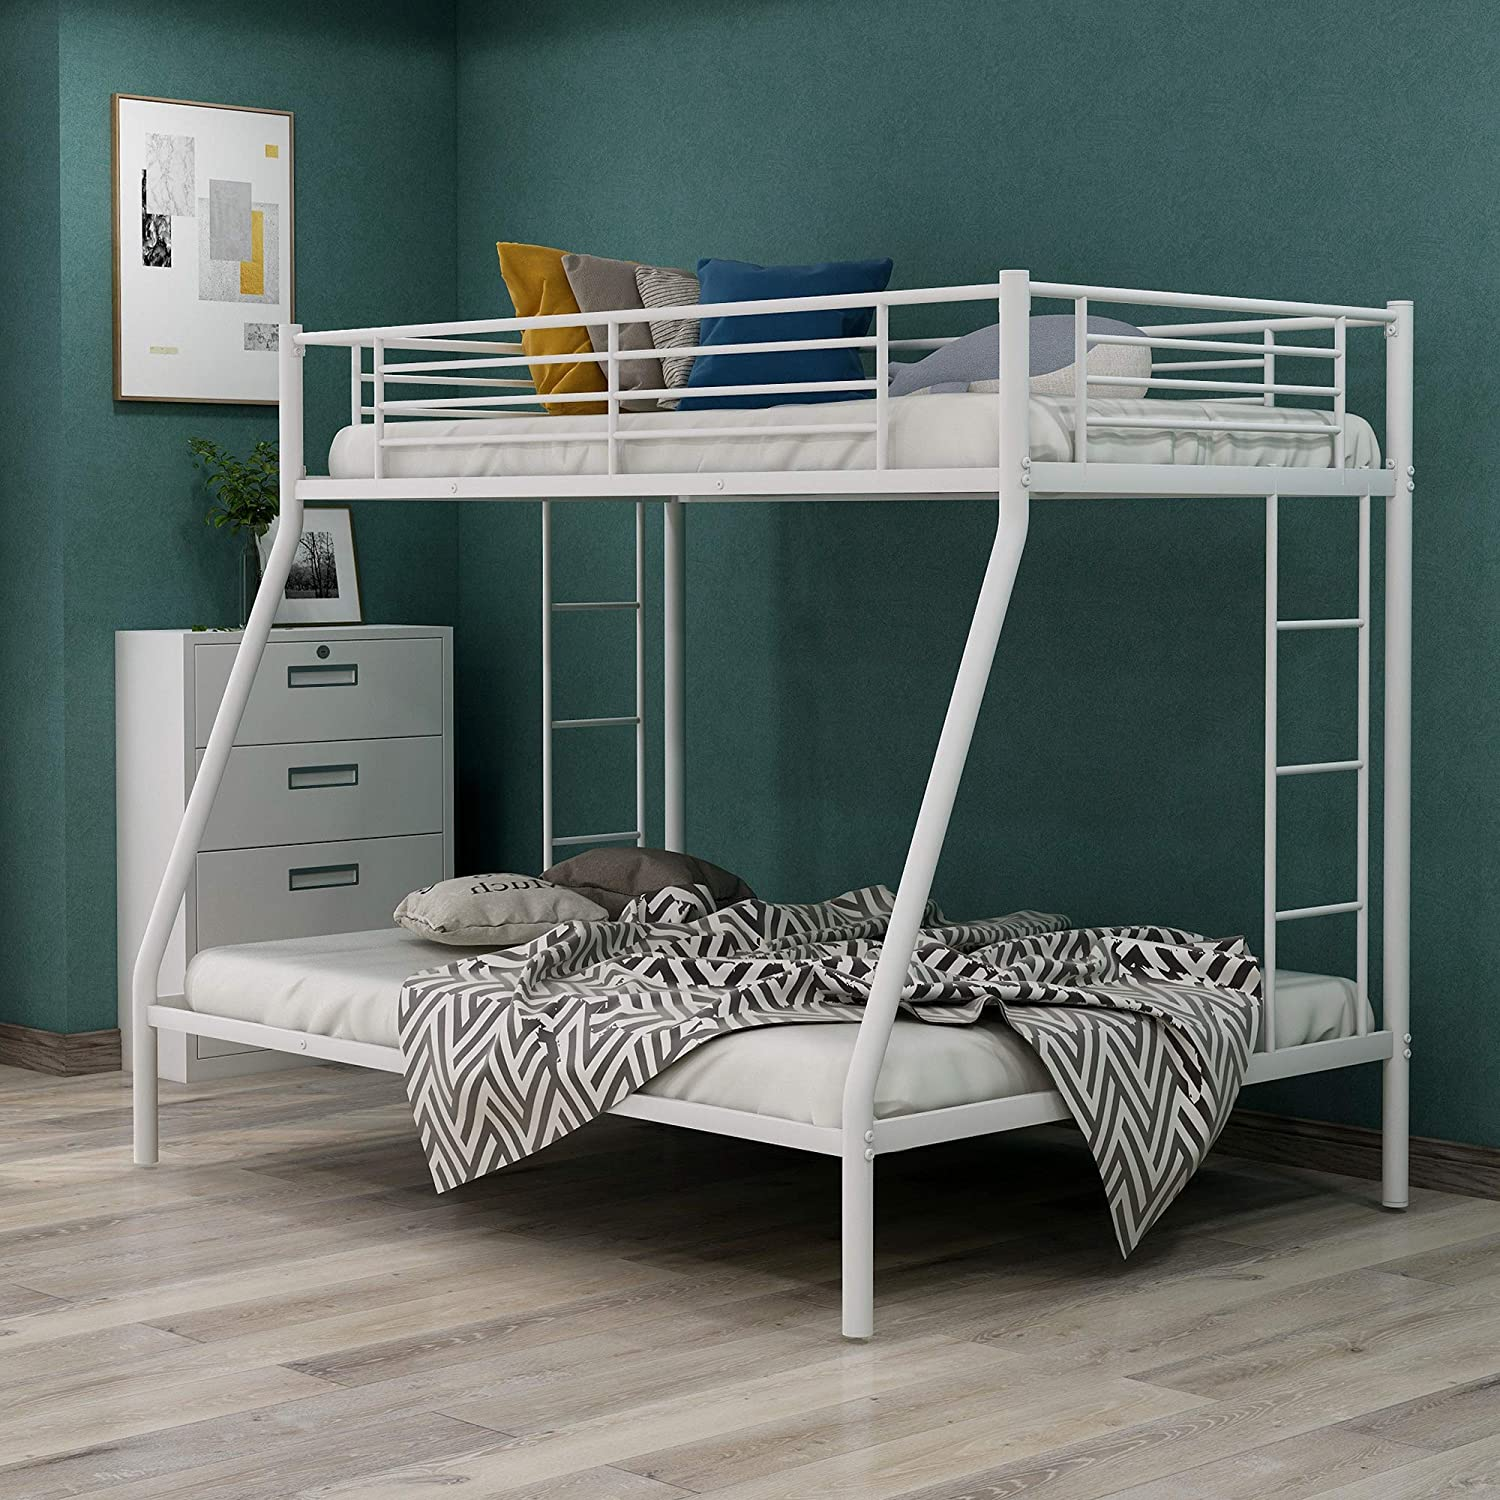 Twin-Over-Full Bunk Bed Sturdy Metal Frame and Ladder, Space Saving Design, White